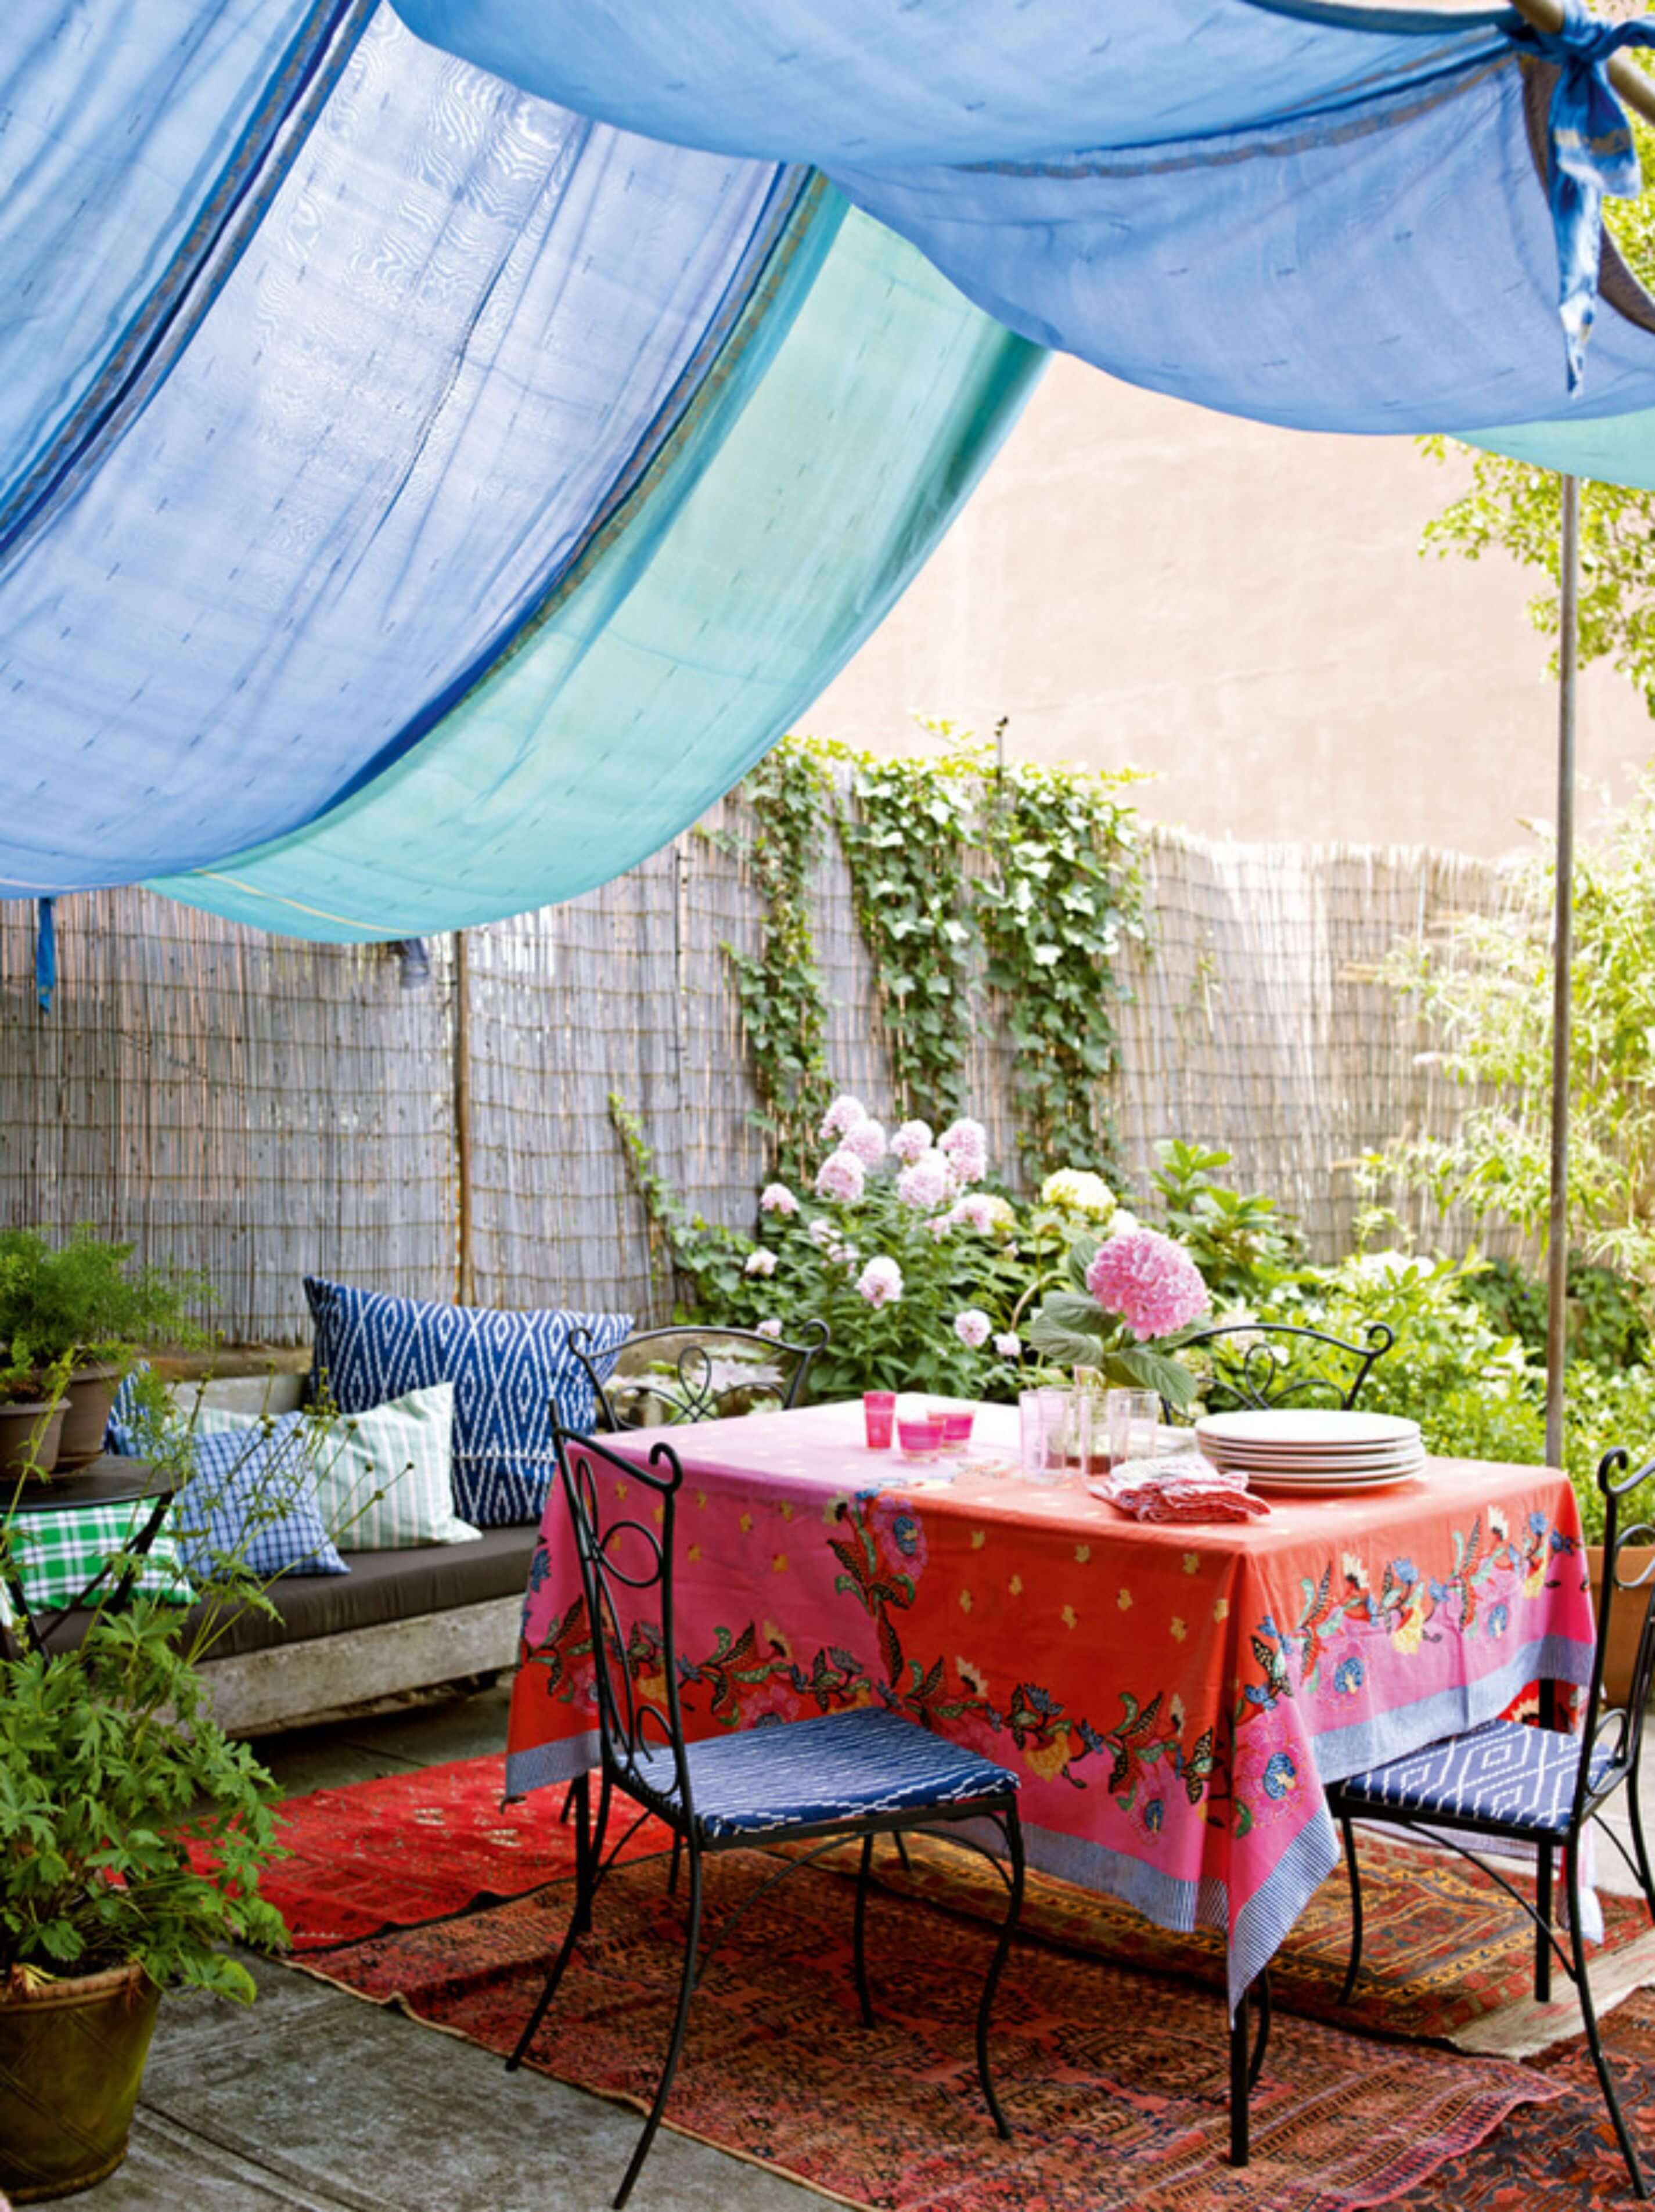 Billowy Fabrics Provide Shade and a Color Pop